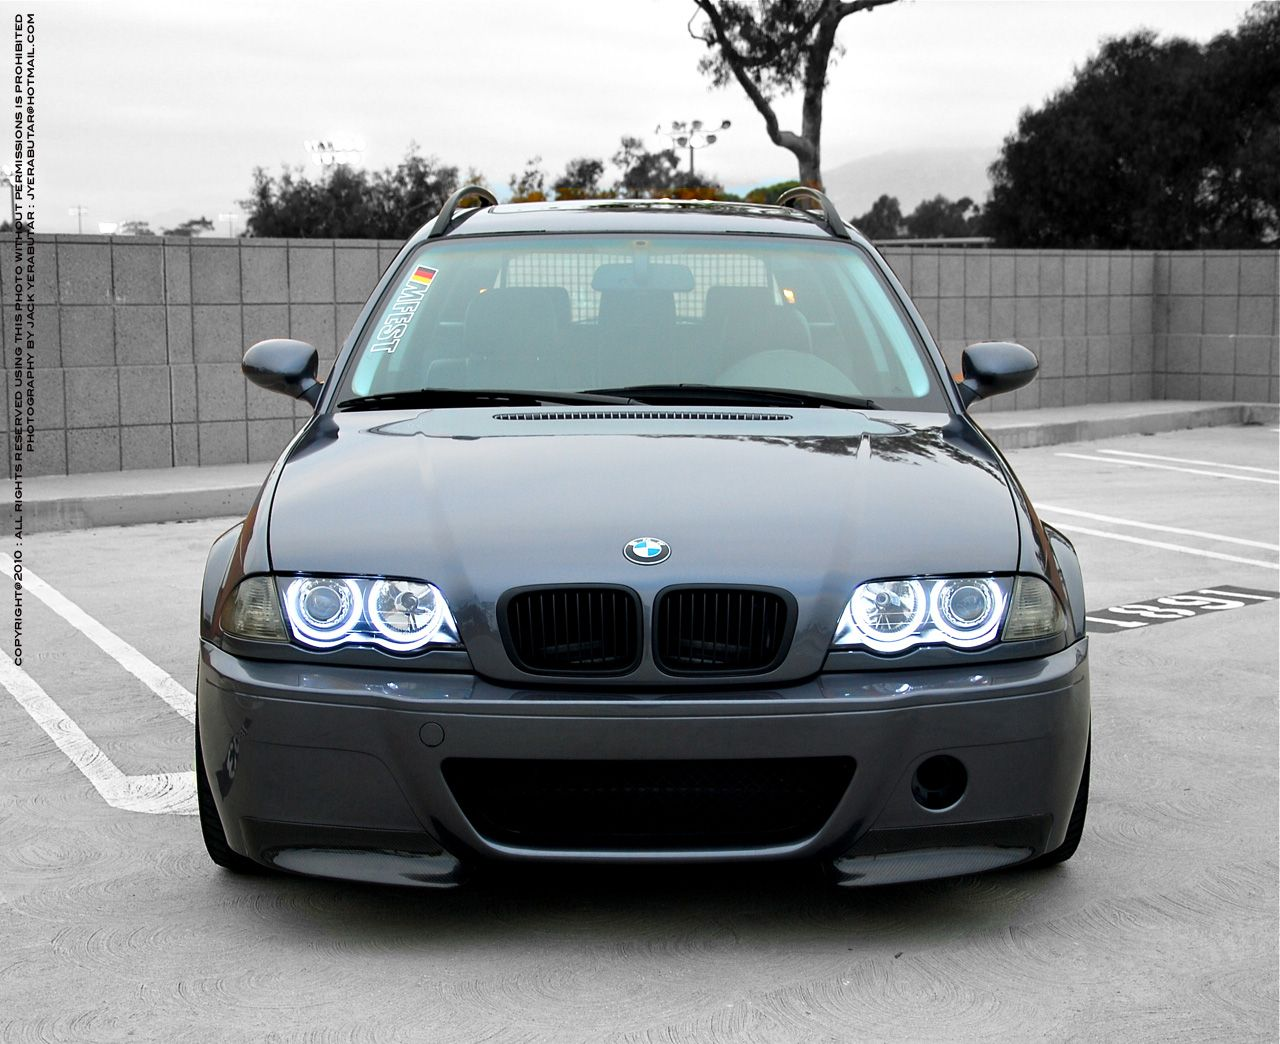 e46 touring e46 sedan build pinterest bmw e46 sedan. Black Bedroom Furniture Sets. Home Design Ideas